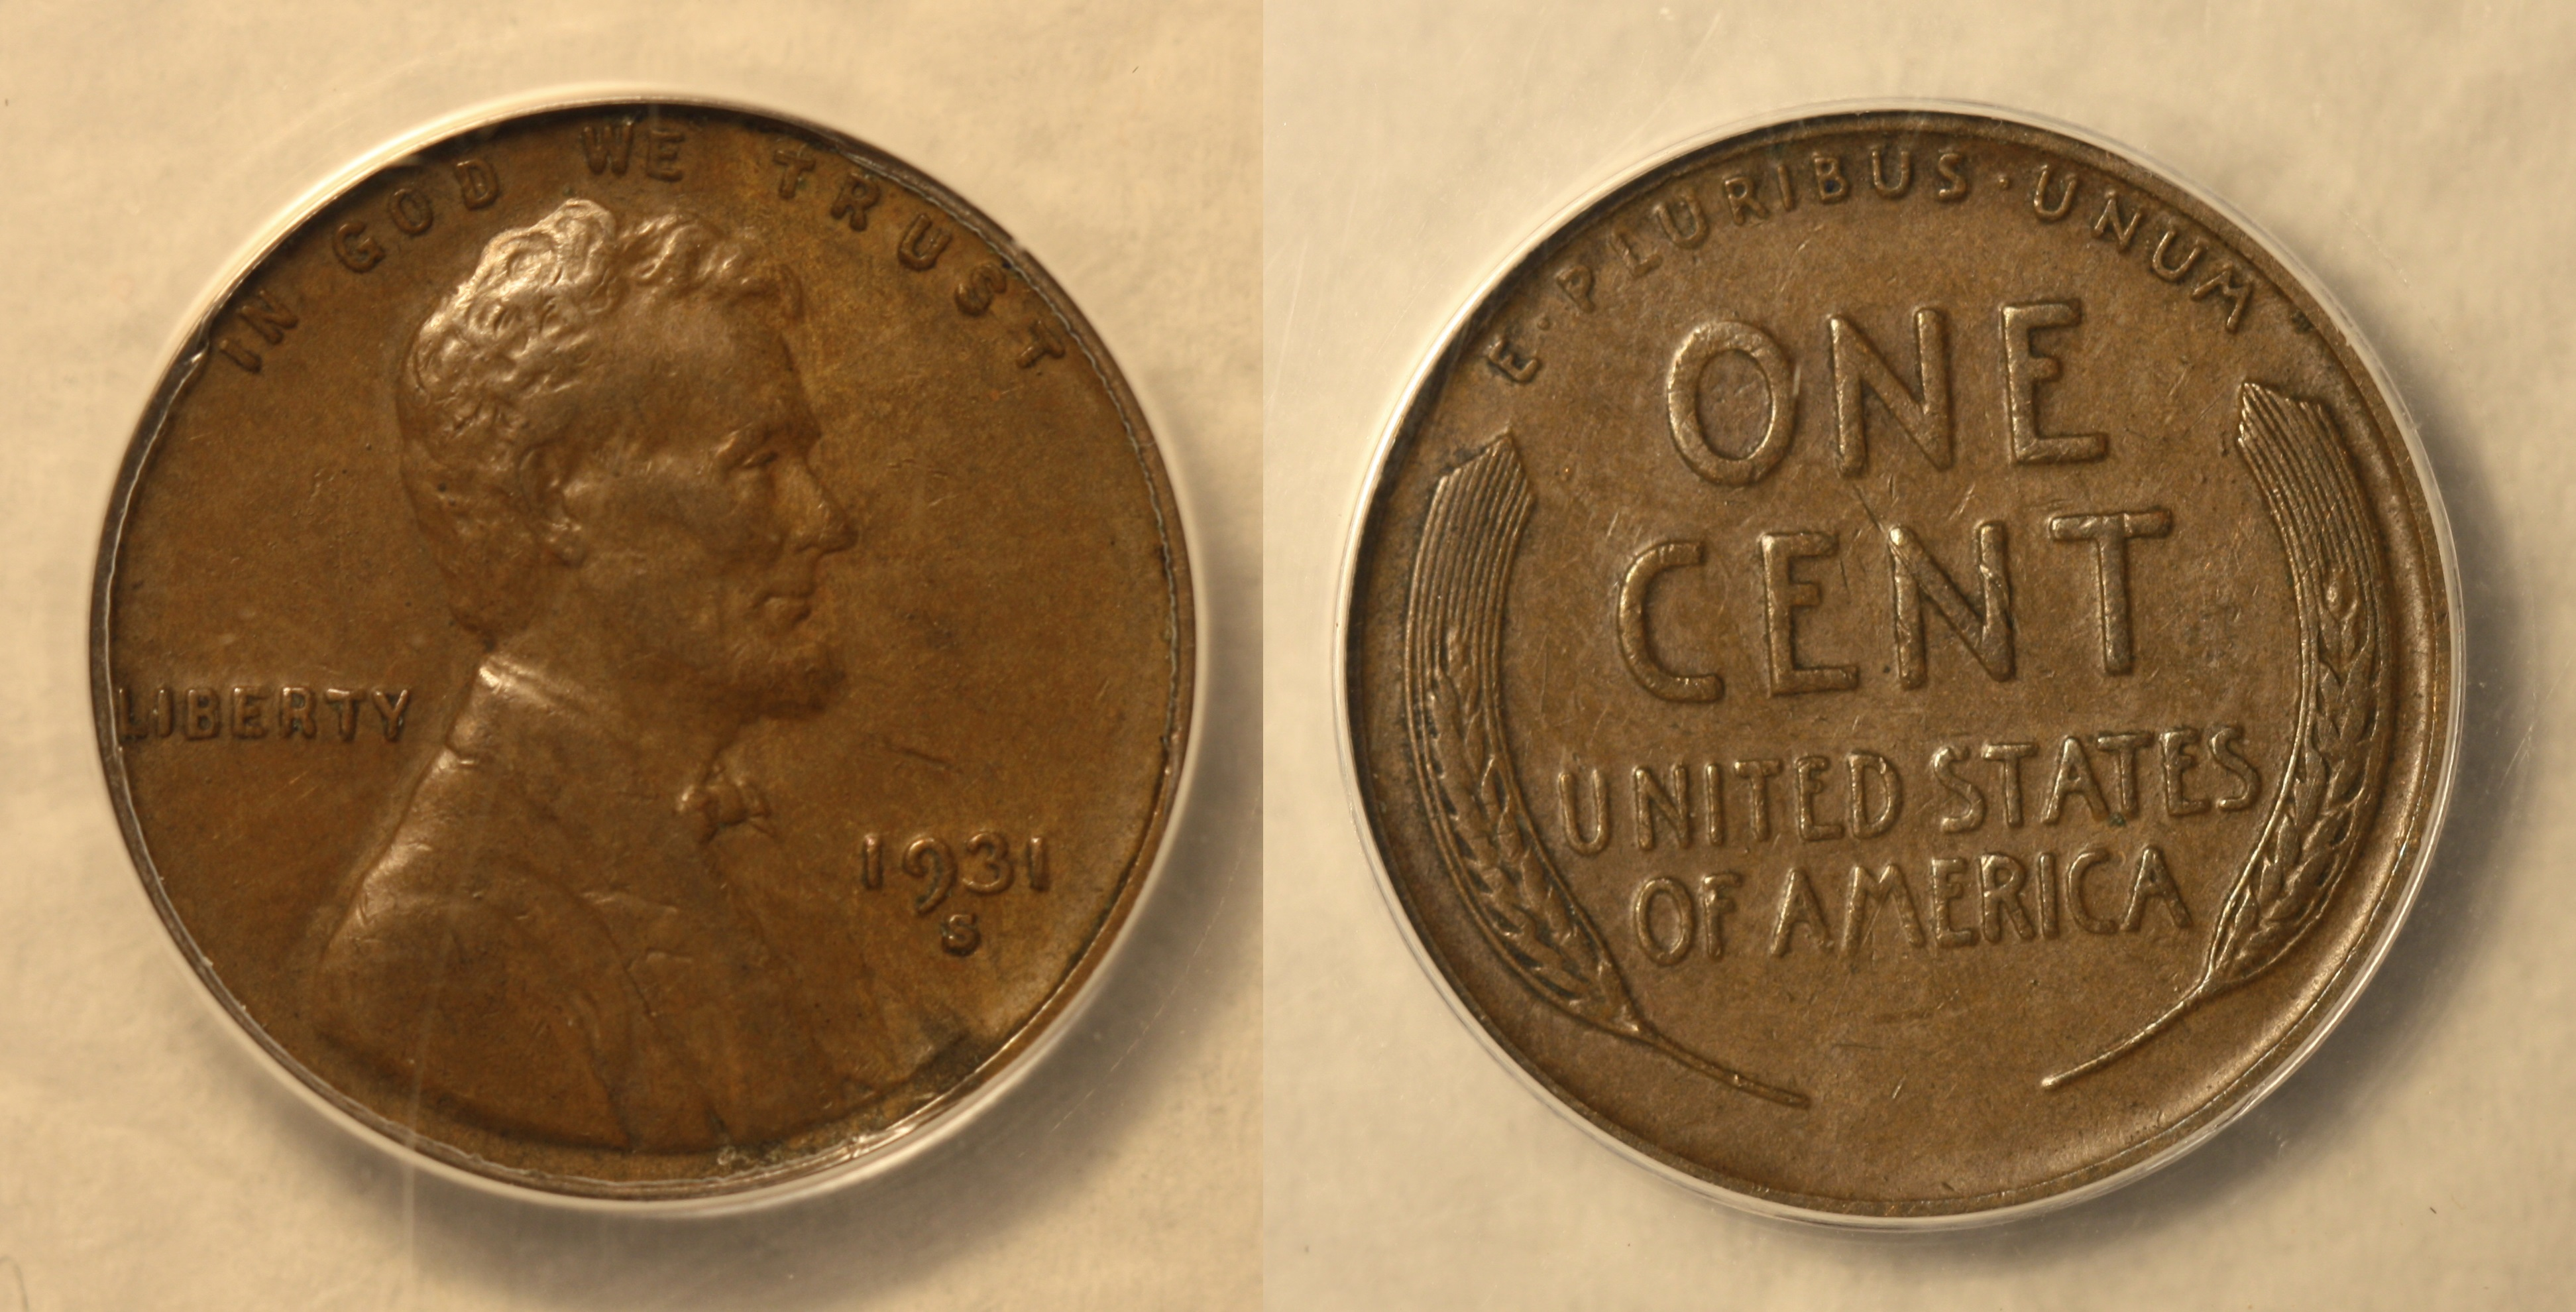 1931-S Lincoln Cent ANACS EF-40 #a camera